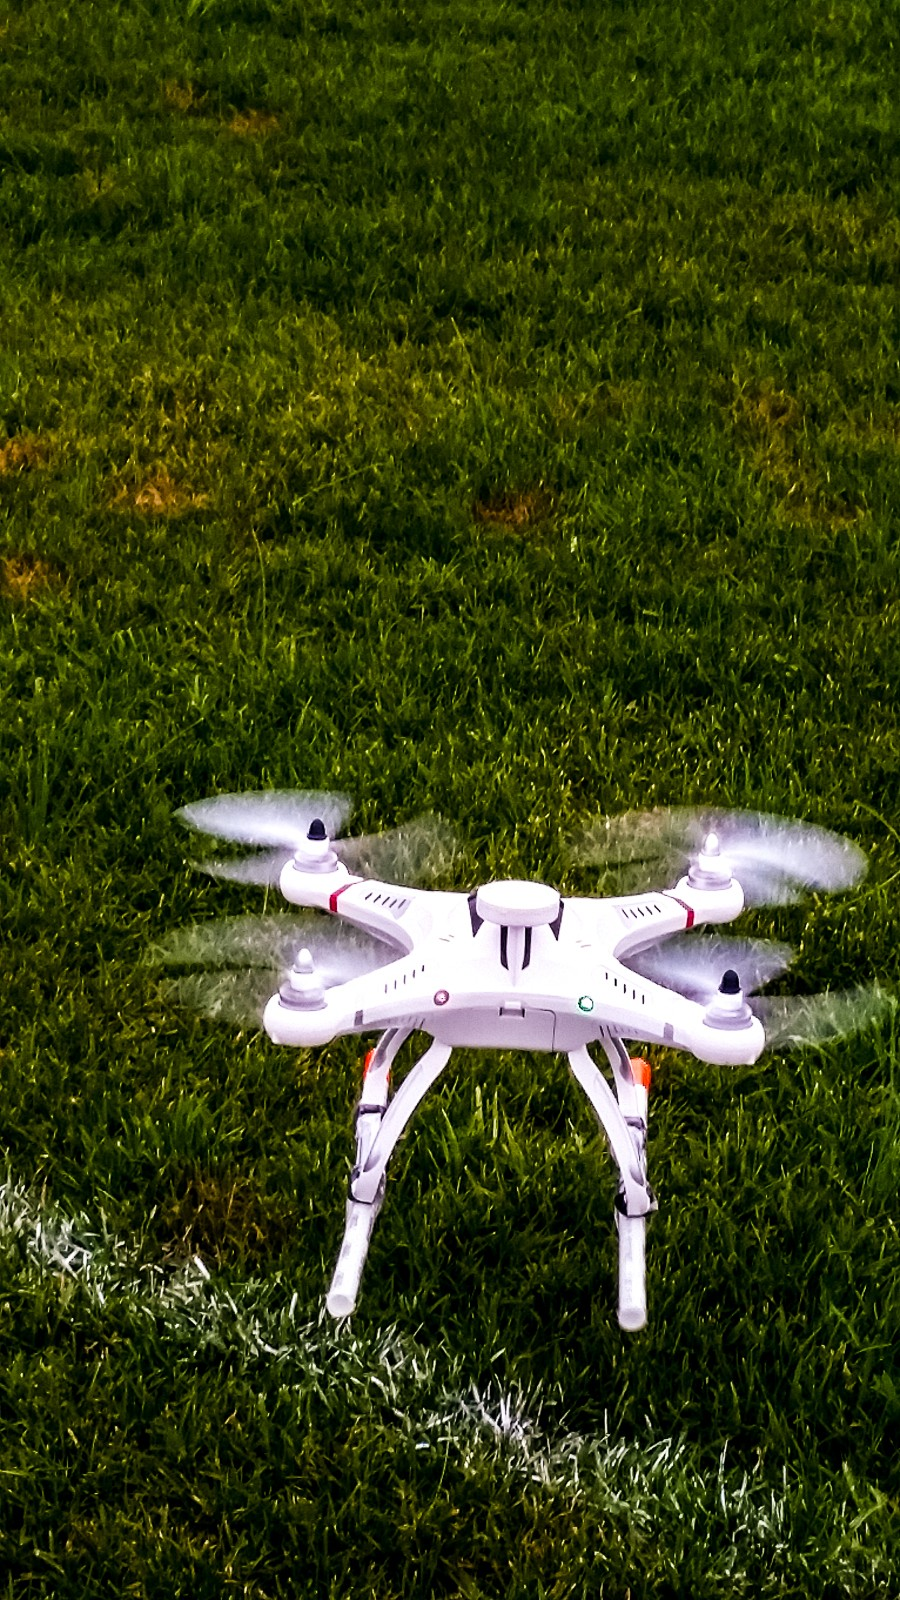 quadcopter-11-7